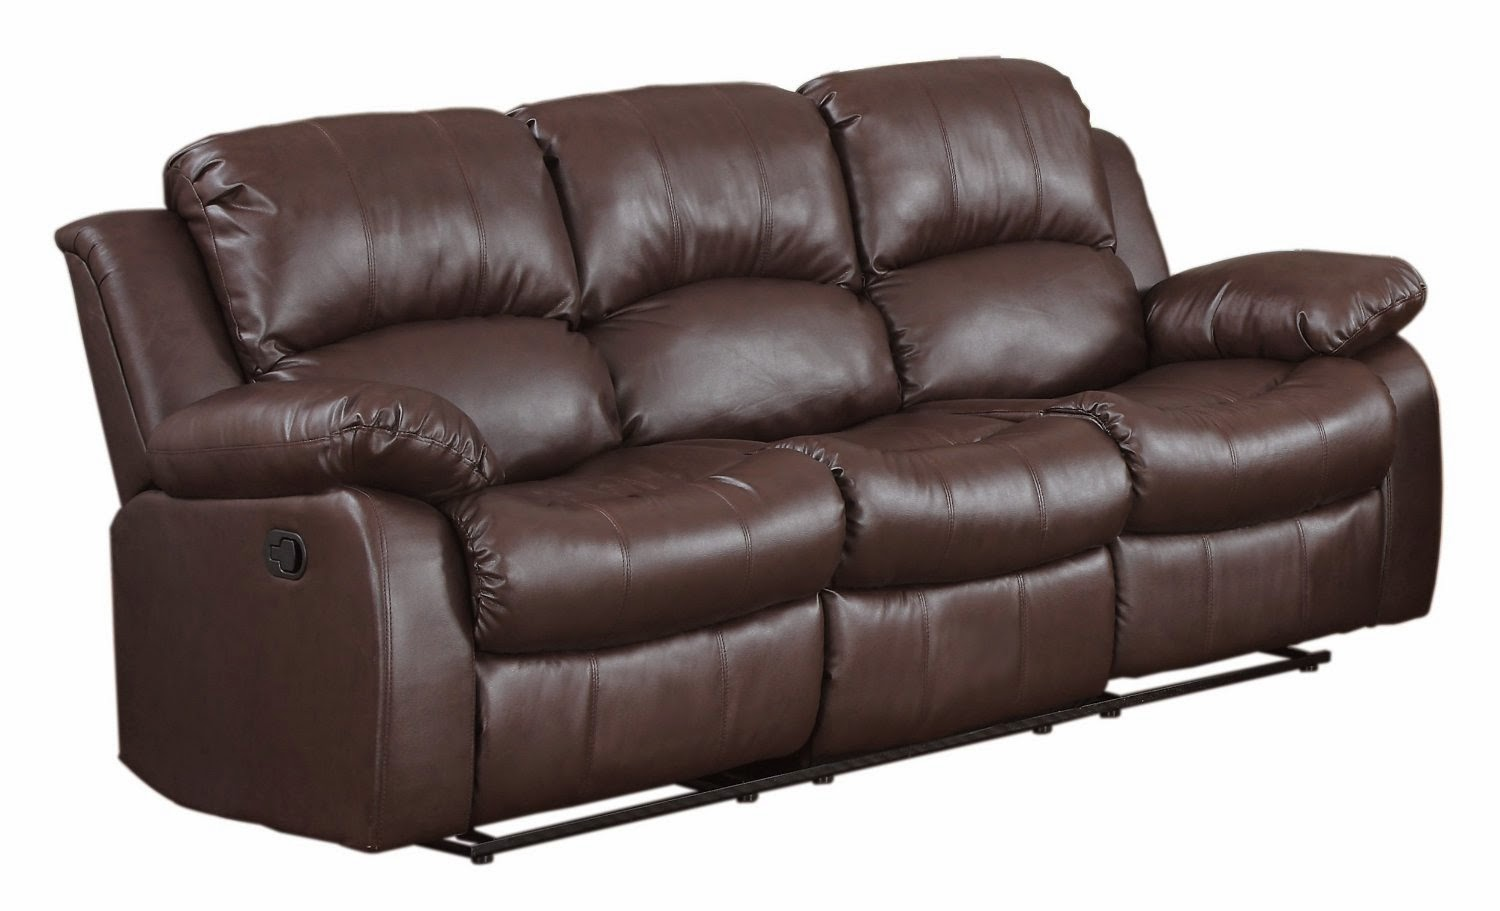 Cheap recliner sofas for sale sectional reclining sofas leather Leather sofa and loveseat recliner